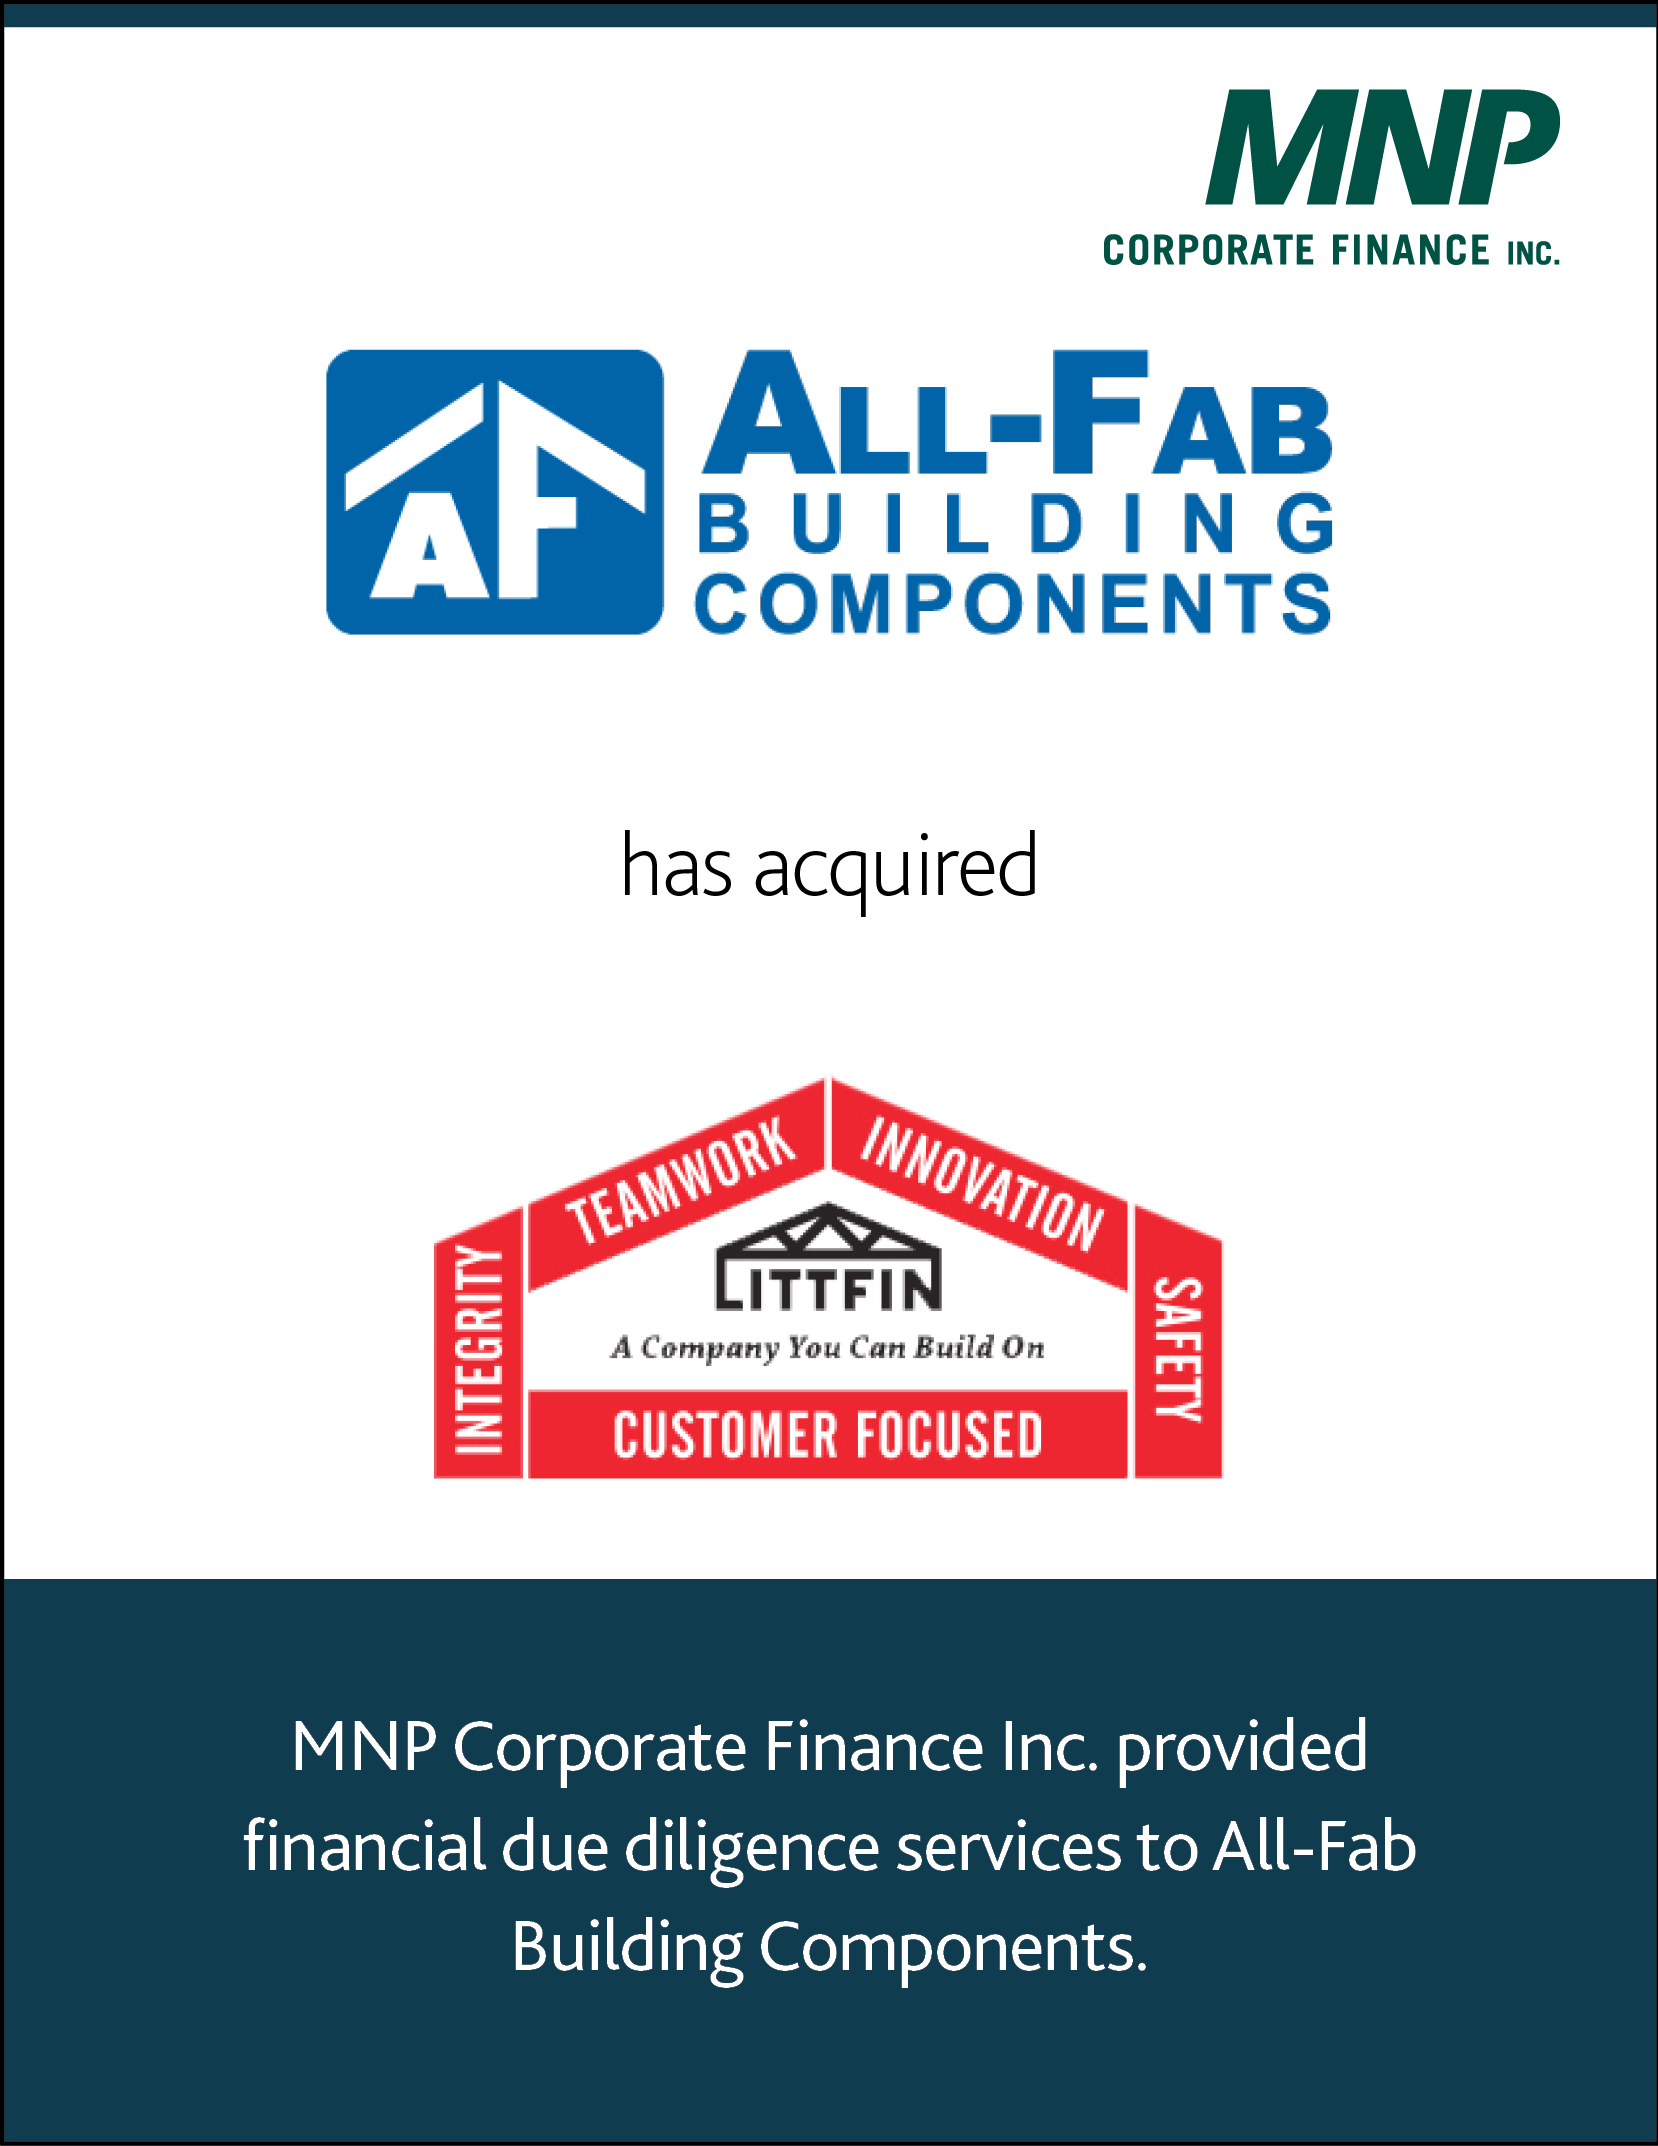 All-Fab Building Components has acquired Littfin